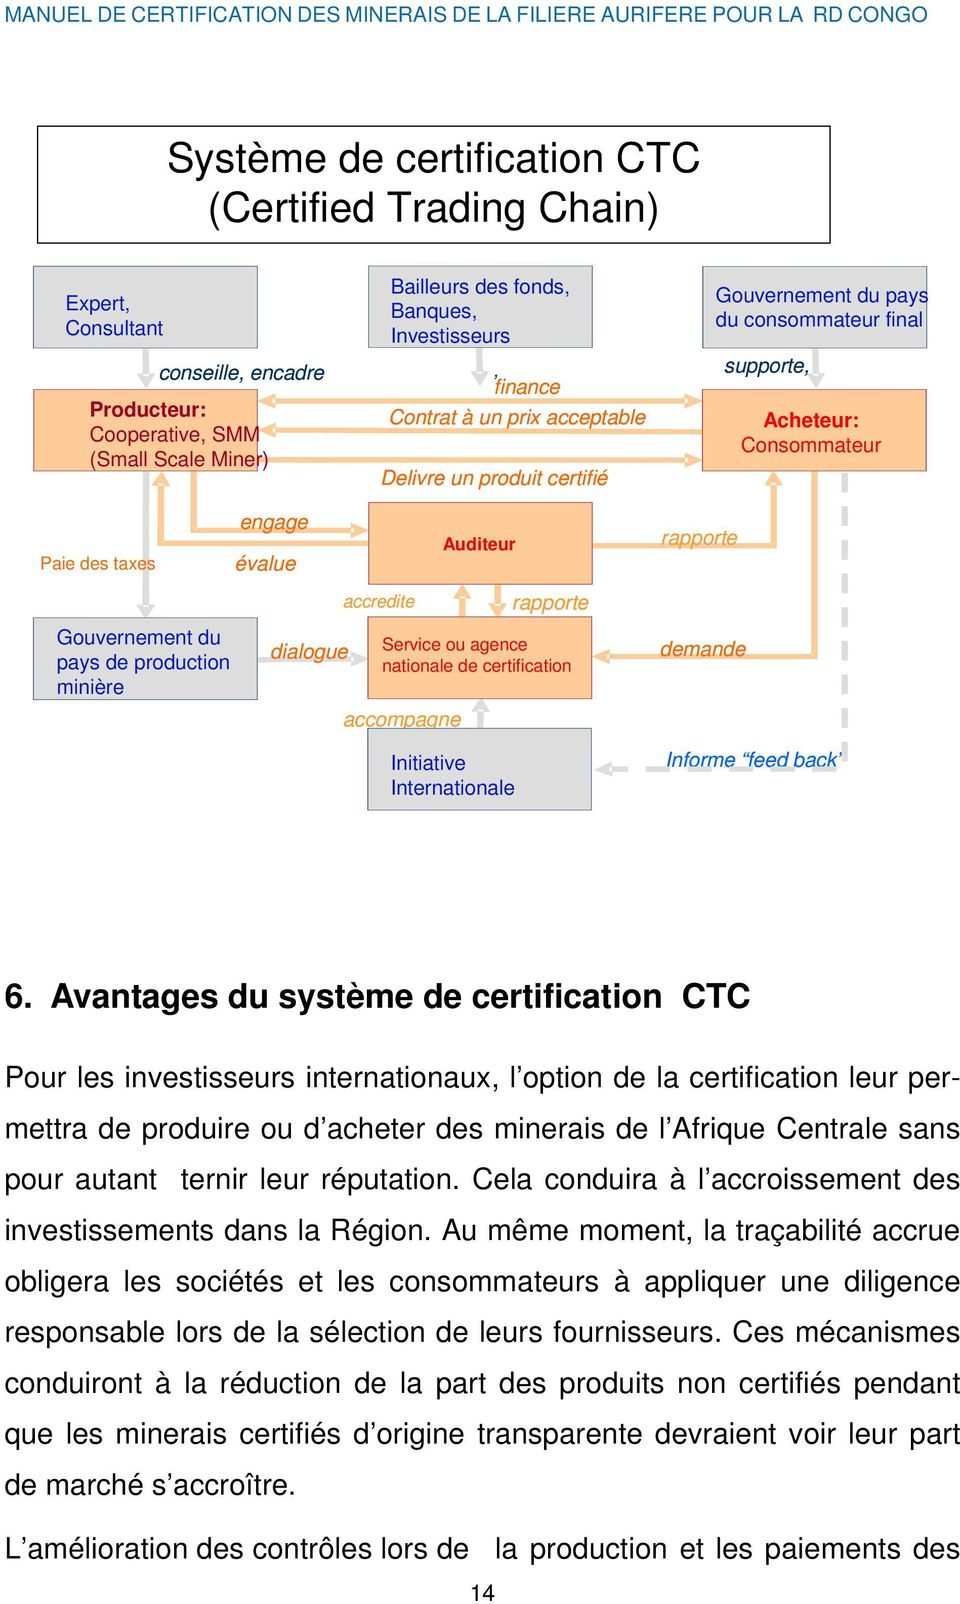 Consommateur Paie des taxes Gouvernement du pays de production minière engage évalue dialogue accredite accompagne Auditeur rapporte Service ou agence nationale de certification Initiative